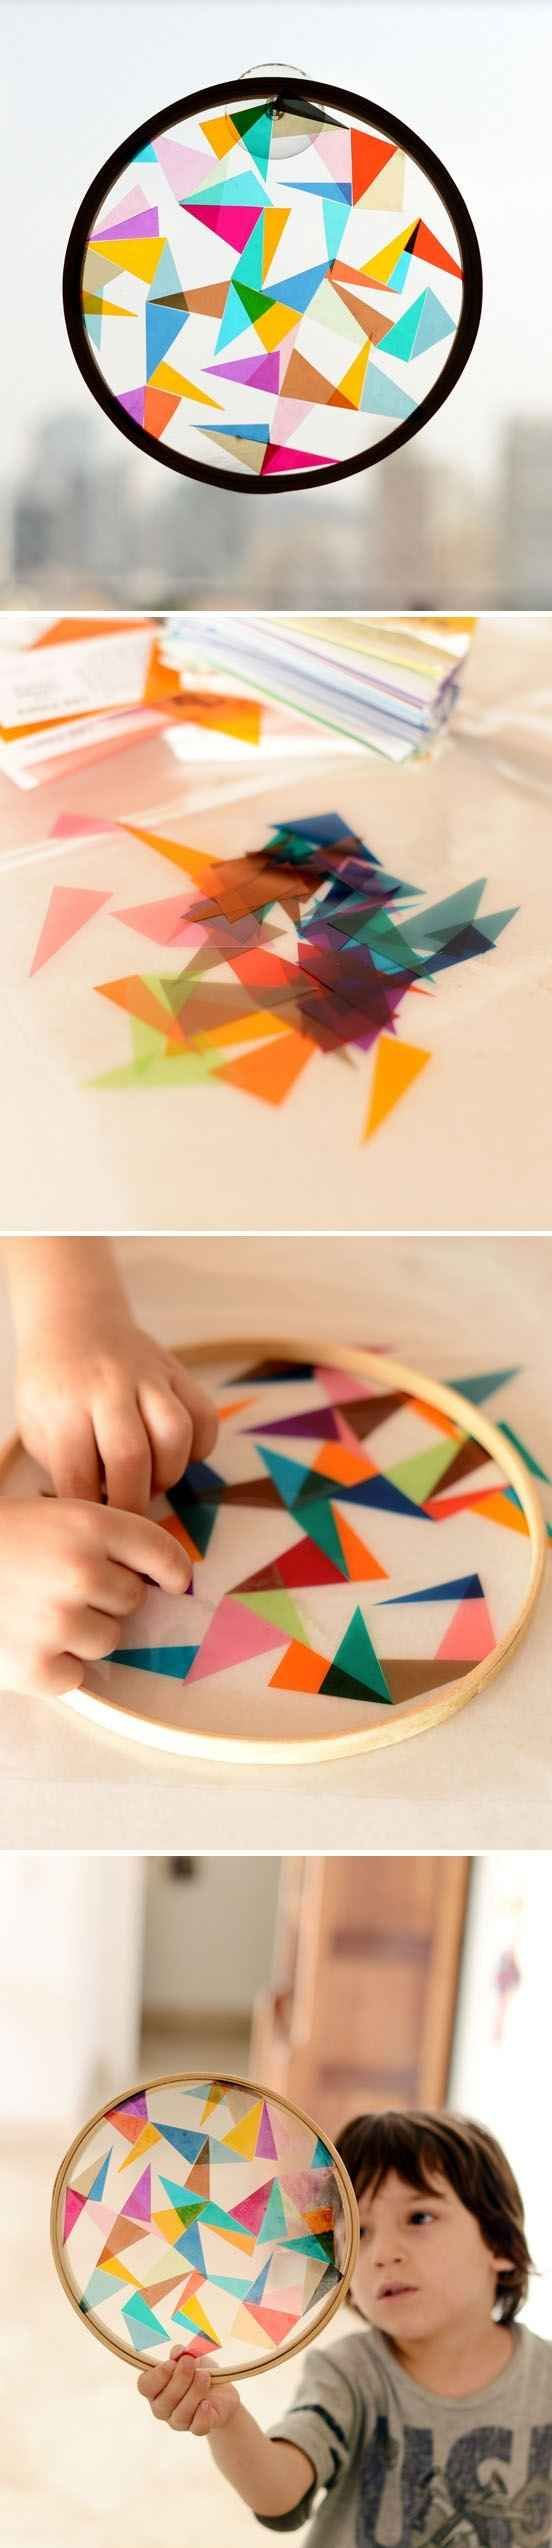 Make suncatchers to learn about colors and shapes.